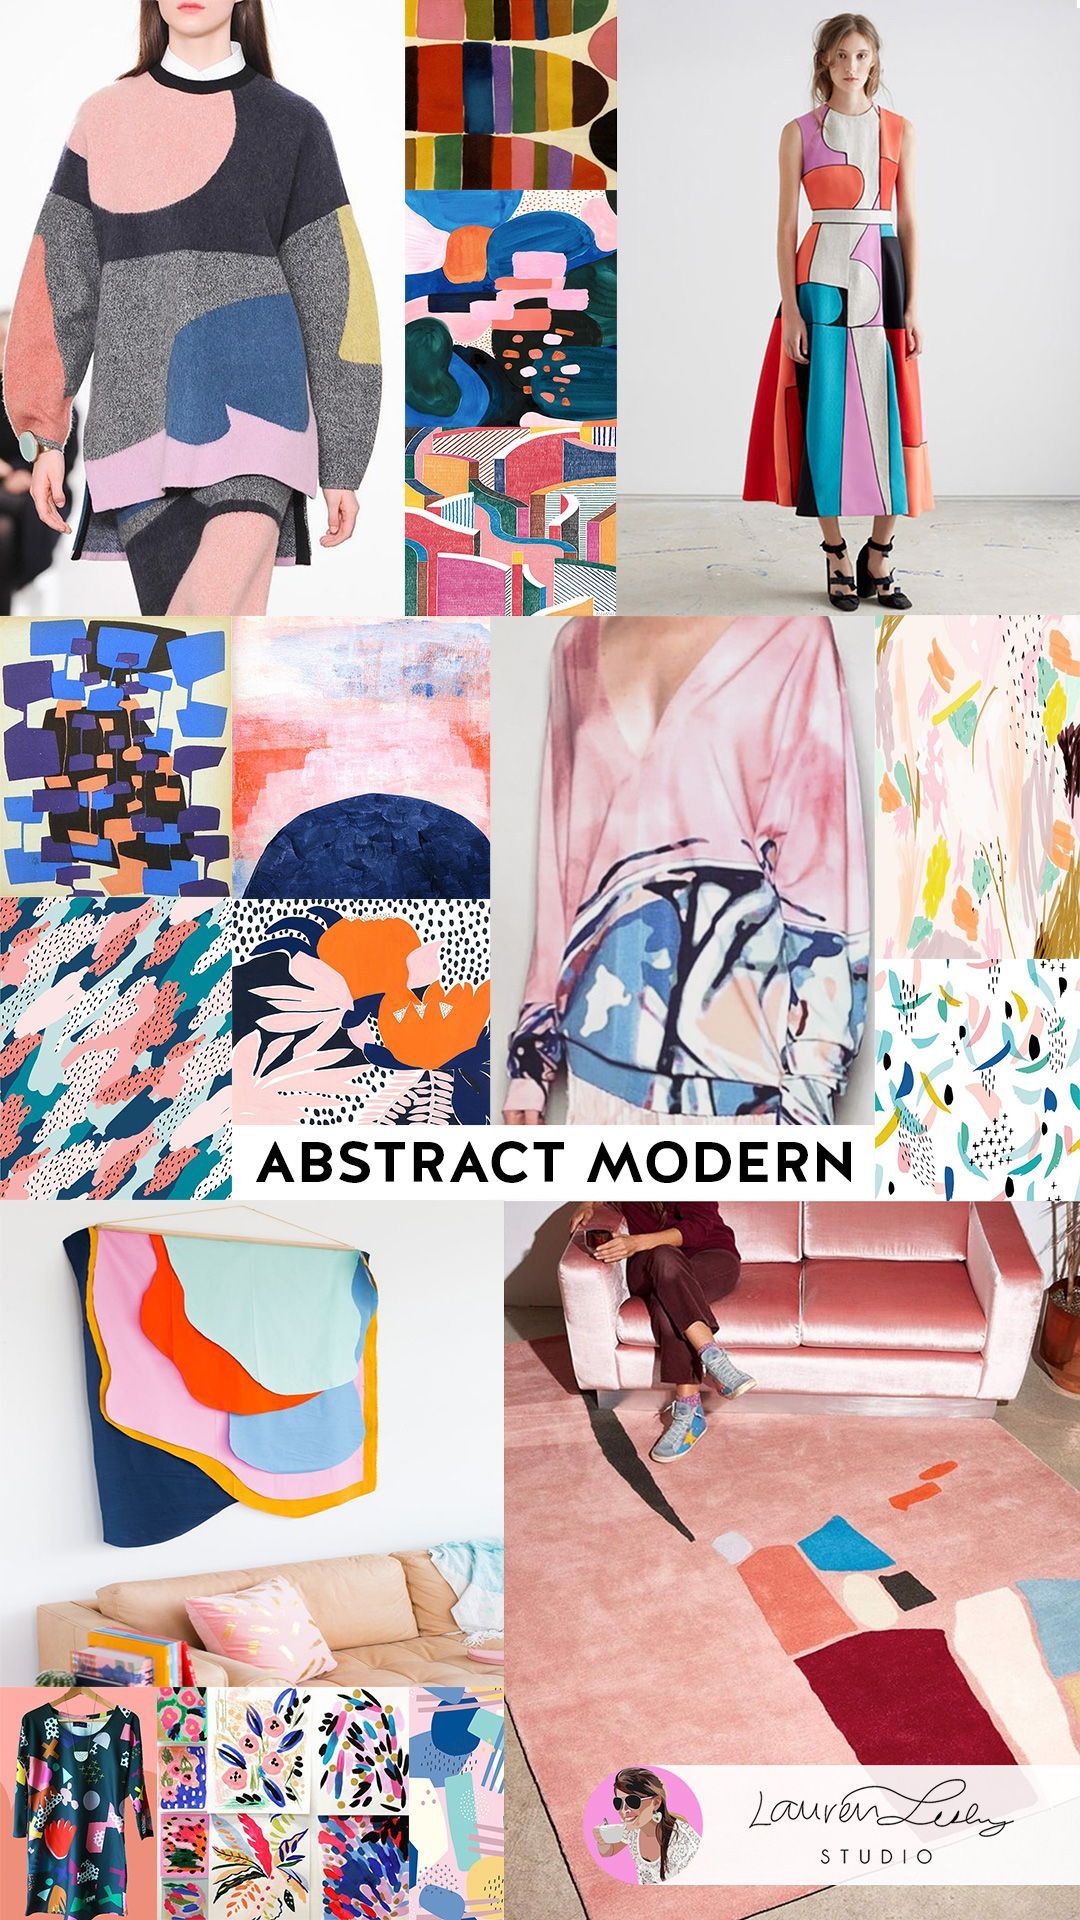 Abstract Modern Trend Report Ss19 Abstract Art In Fashion Ss20 Abstract Artwork In Home Decor Fw19 Mode Fashion Art Prints Print Trends Stationery Trends